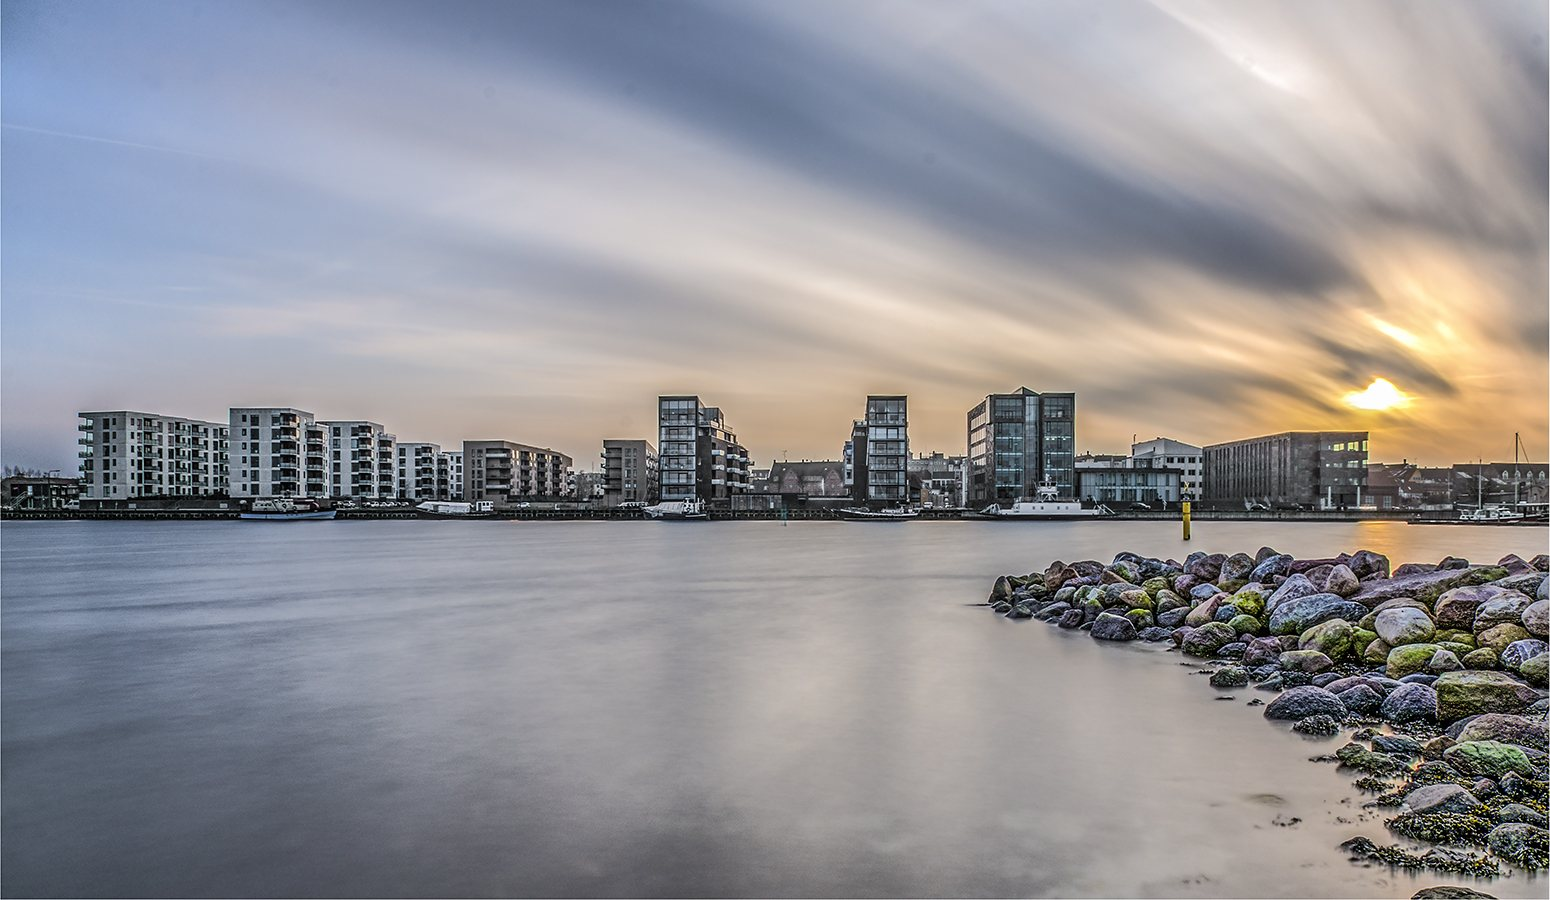 Nd filter 10 stop long exposure photography nd filter b w nd 30 1000x iso 100 f 18 1 min cityscape holbaek denmark